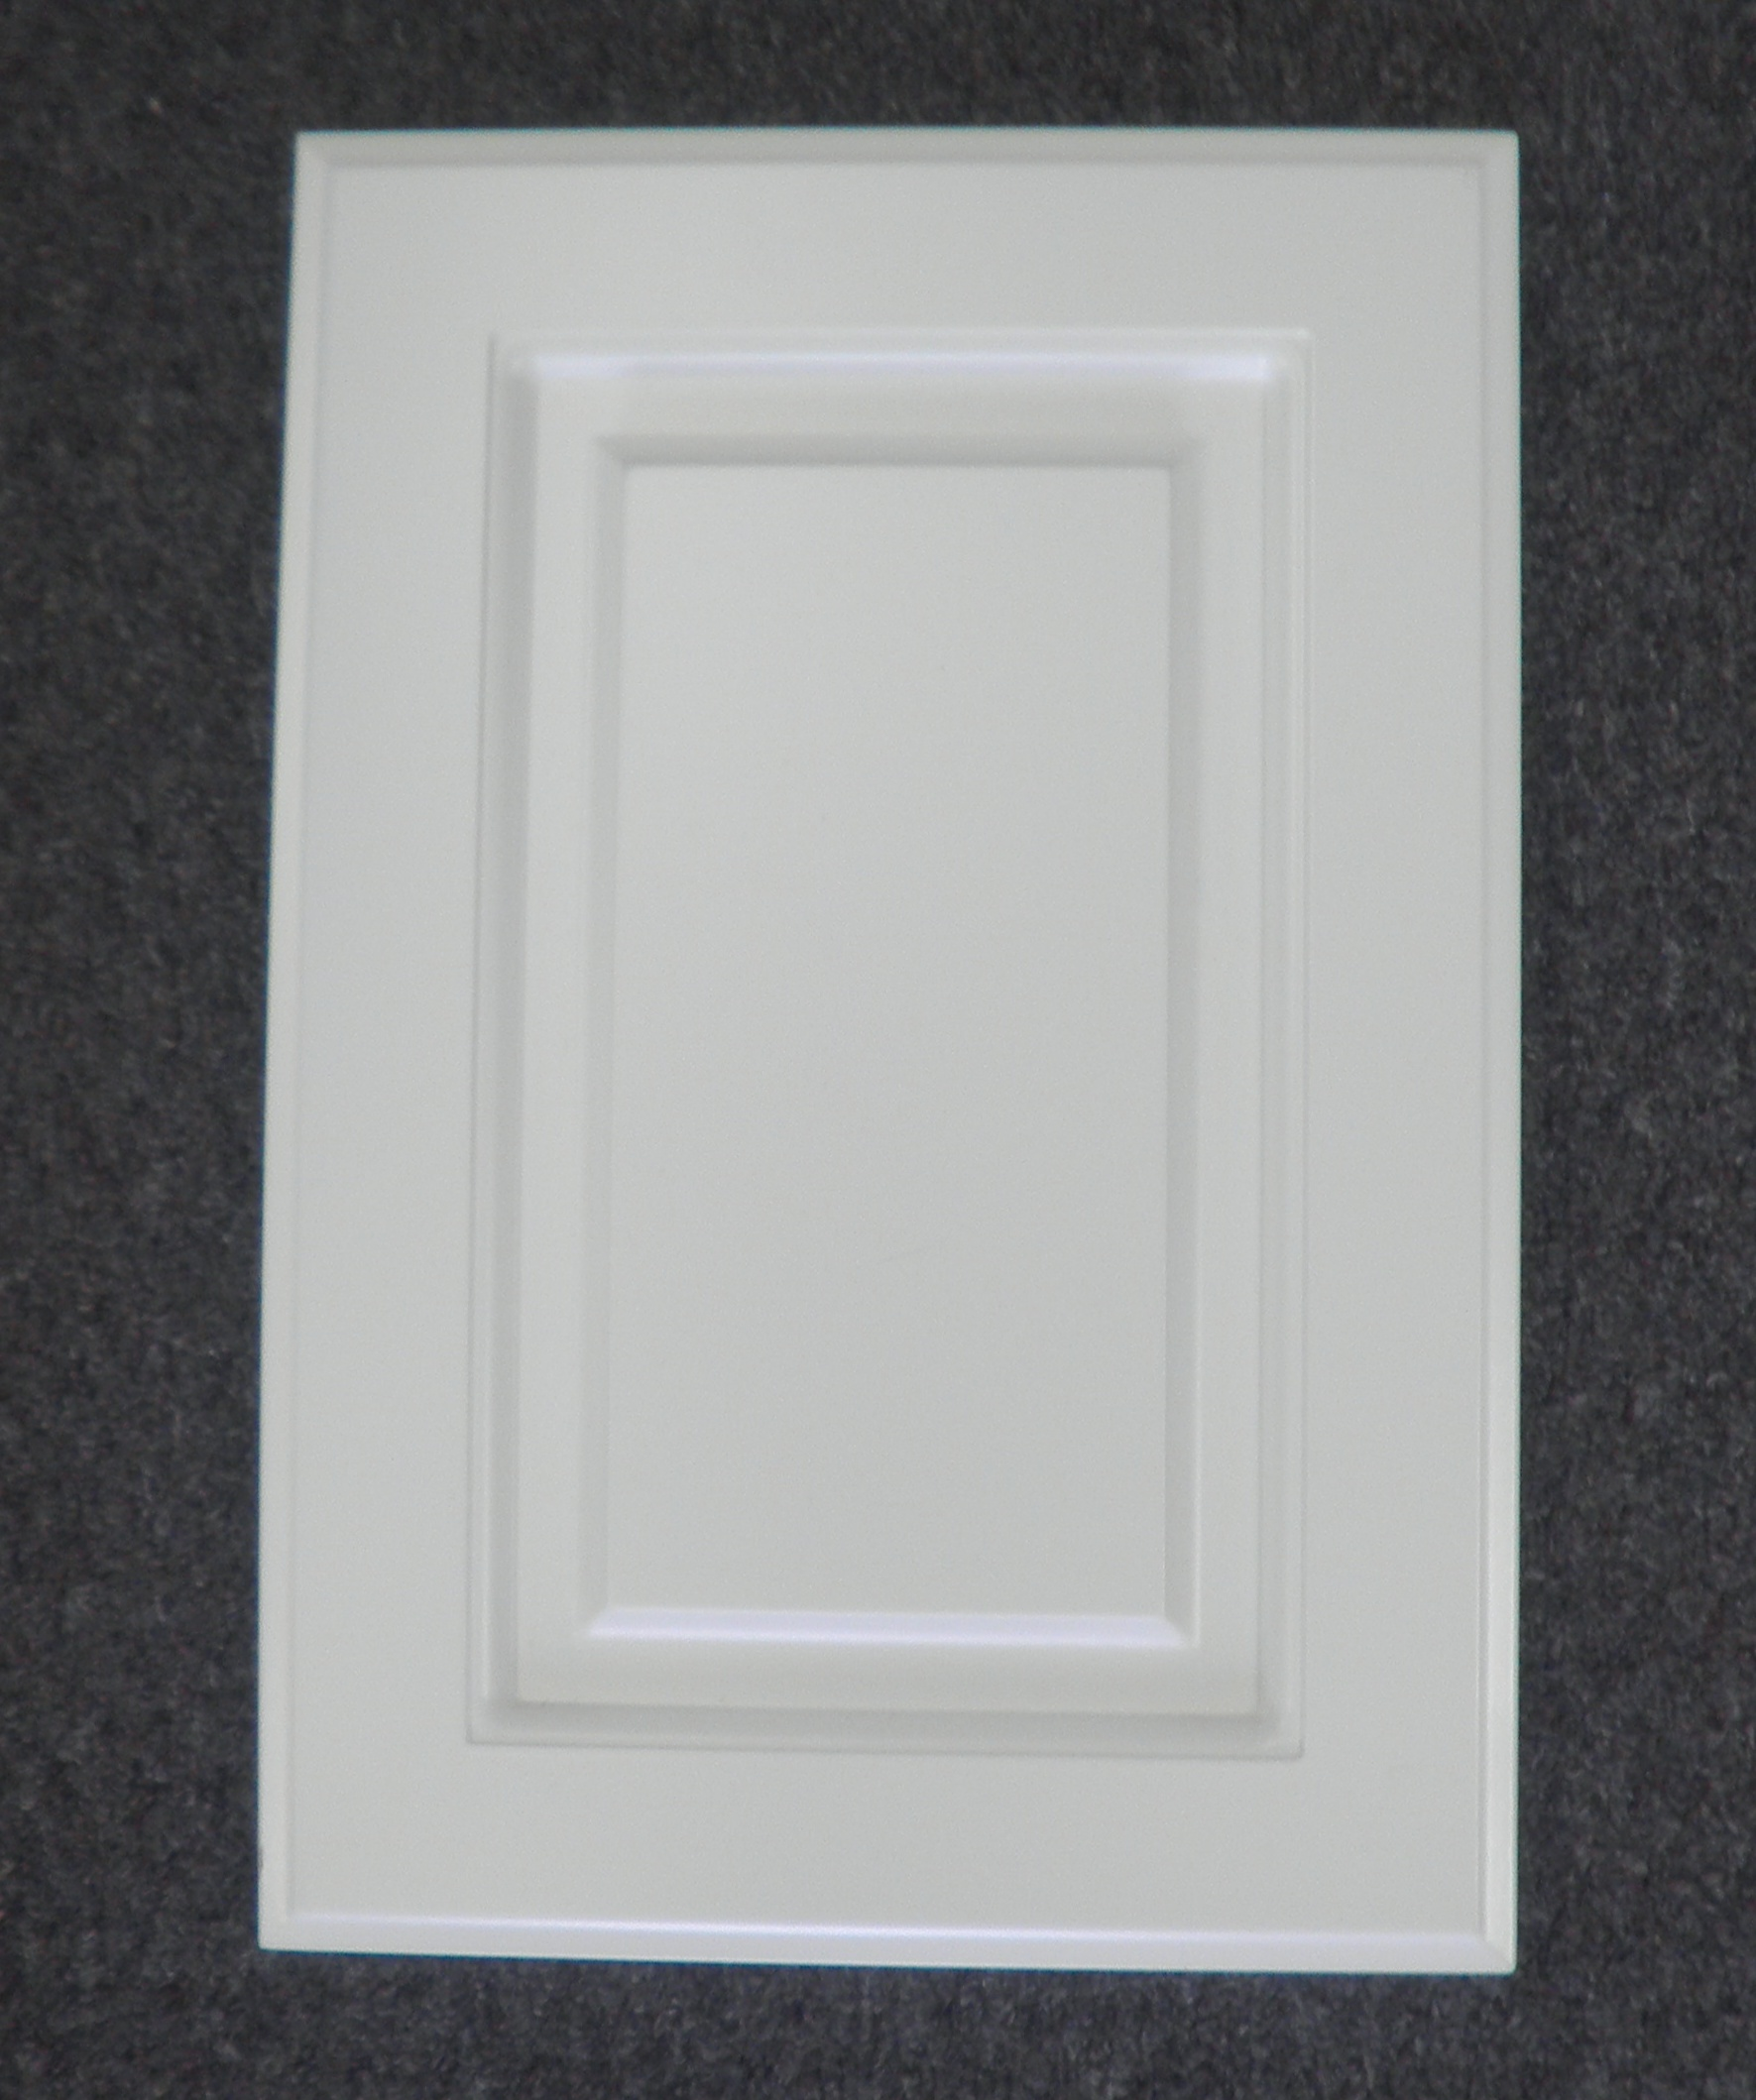 Mdf For Cabinet Doors Mdf Cabinet Doors Carolina Blind Shutter Inc Planned Space Mdf Doors